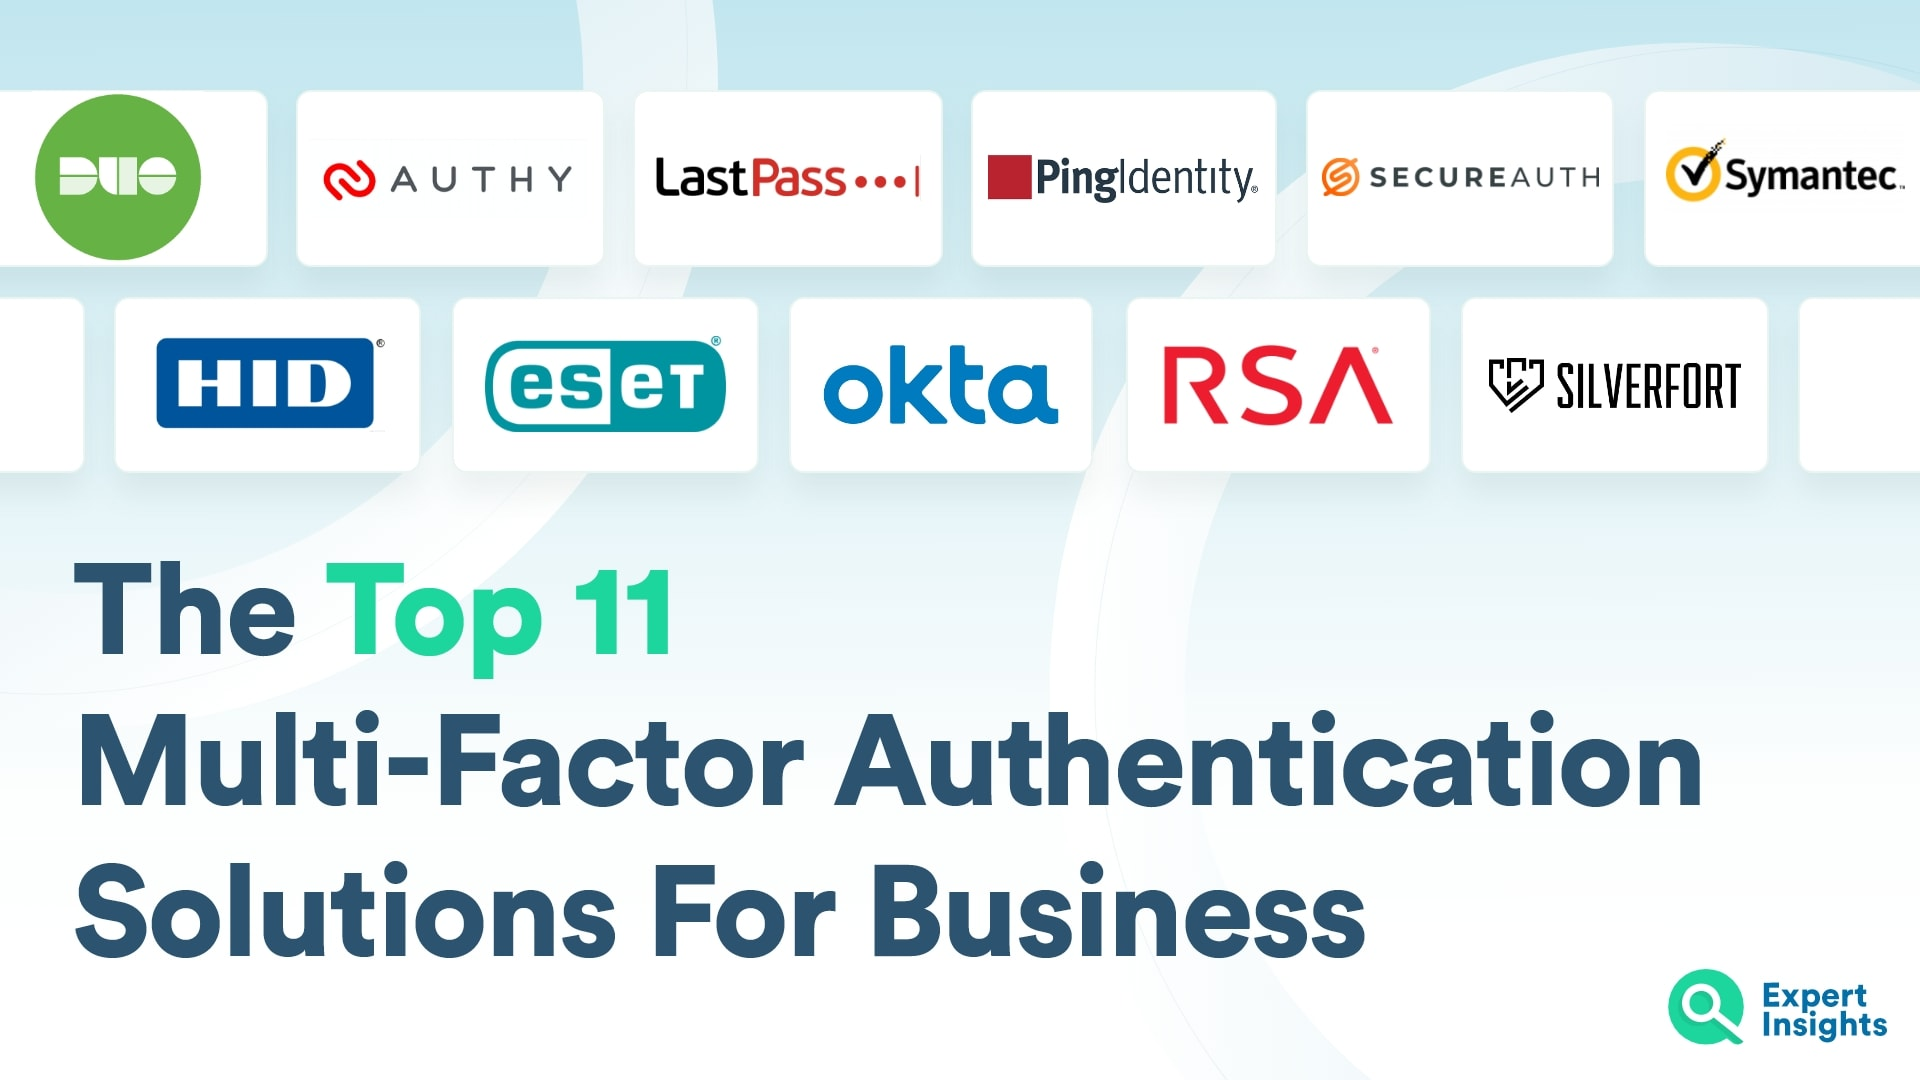 The Top 11 Multi-Factor Authentication (MFA) Solutions For Business - Expert Insights